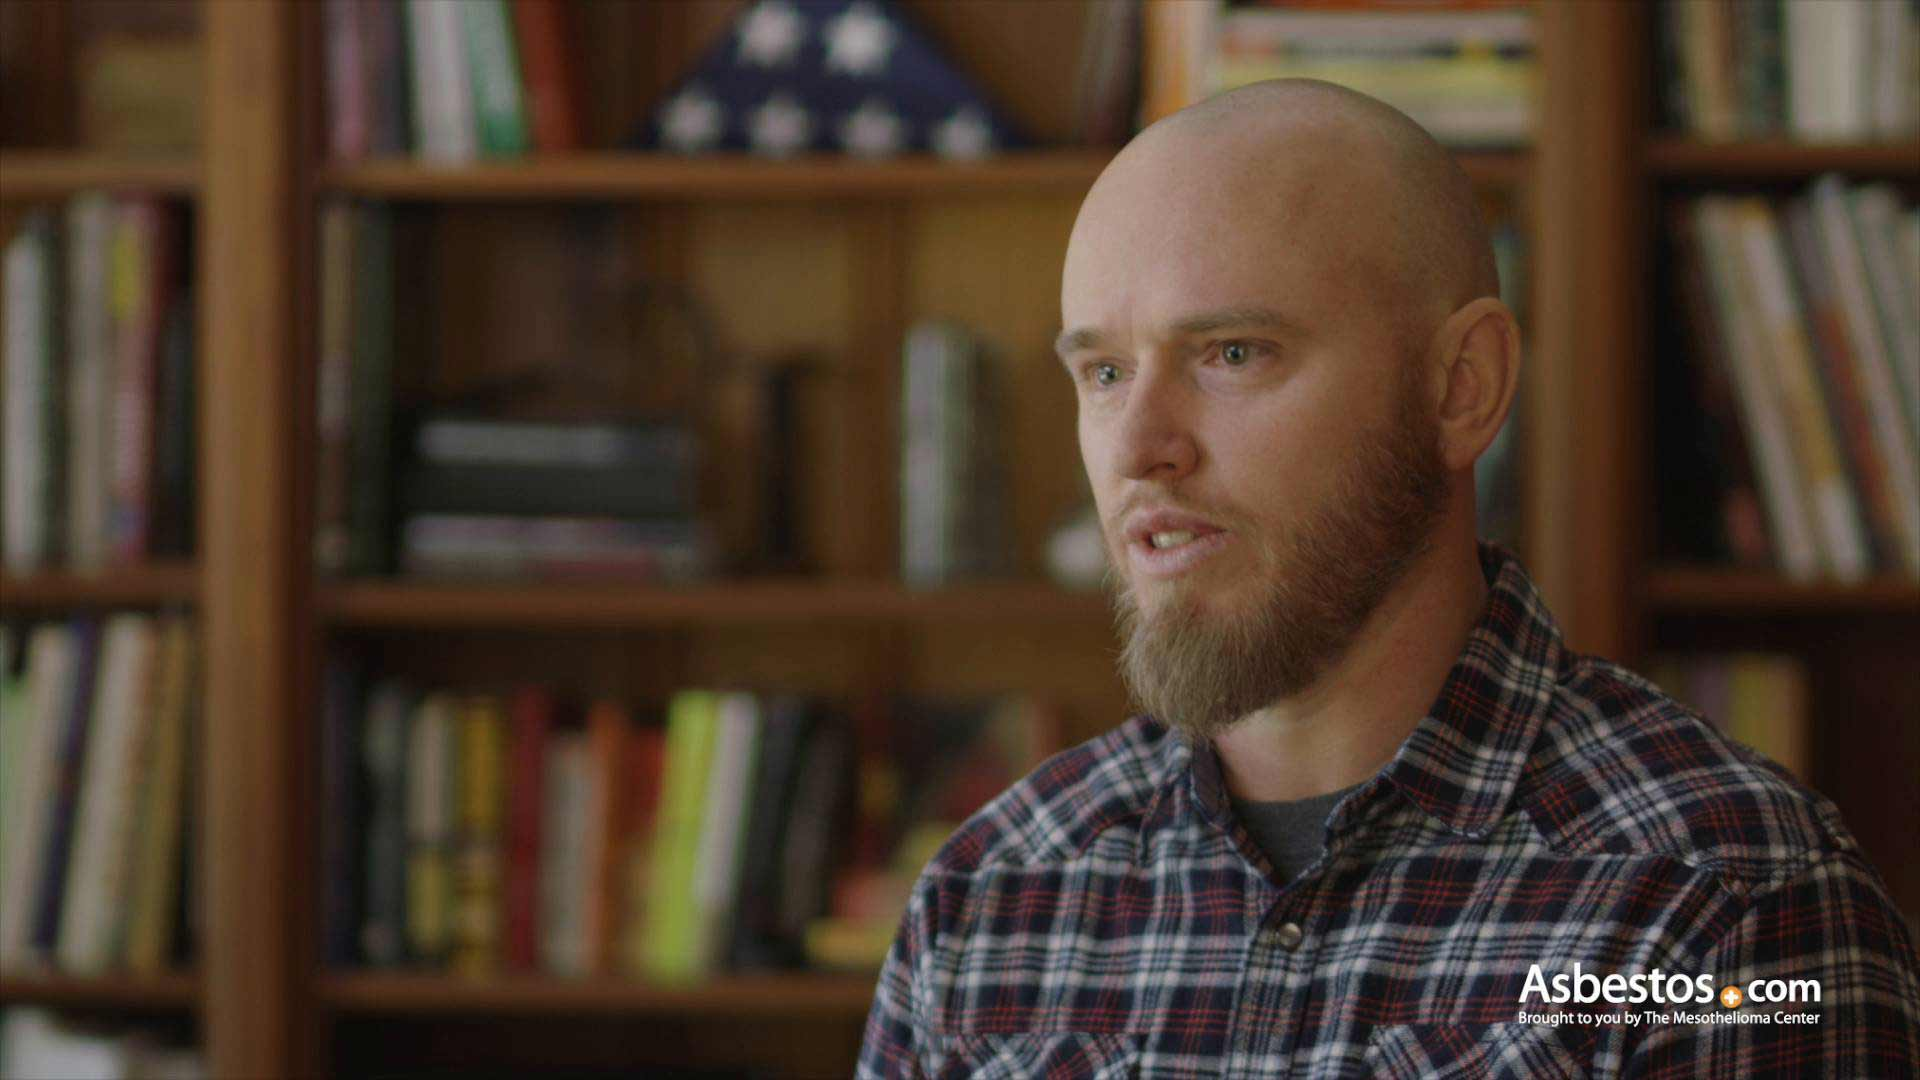 Video of Aaron Munz, Asbestos.com's Veterans Dept. Director on how to file a VA claim